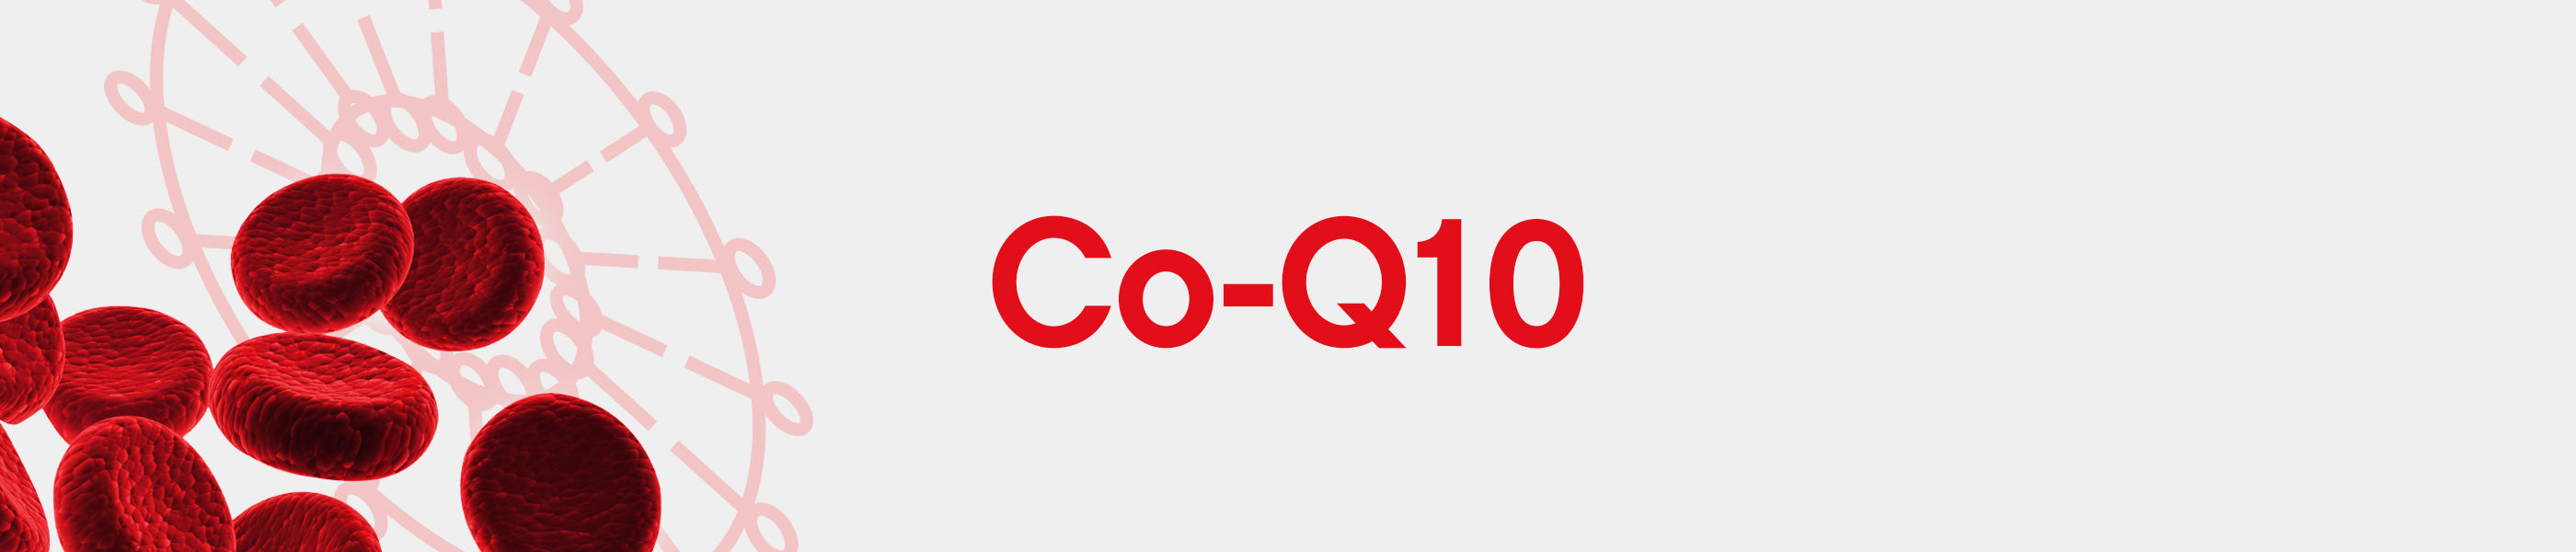 Co-Q10 header image